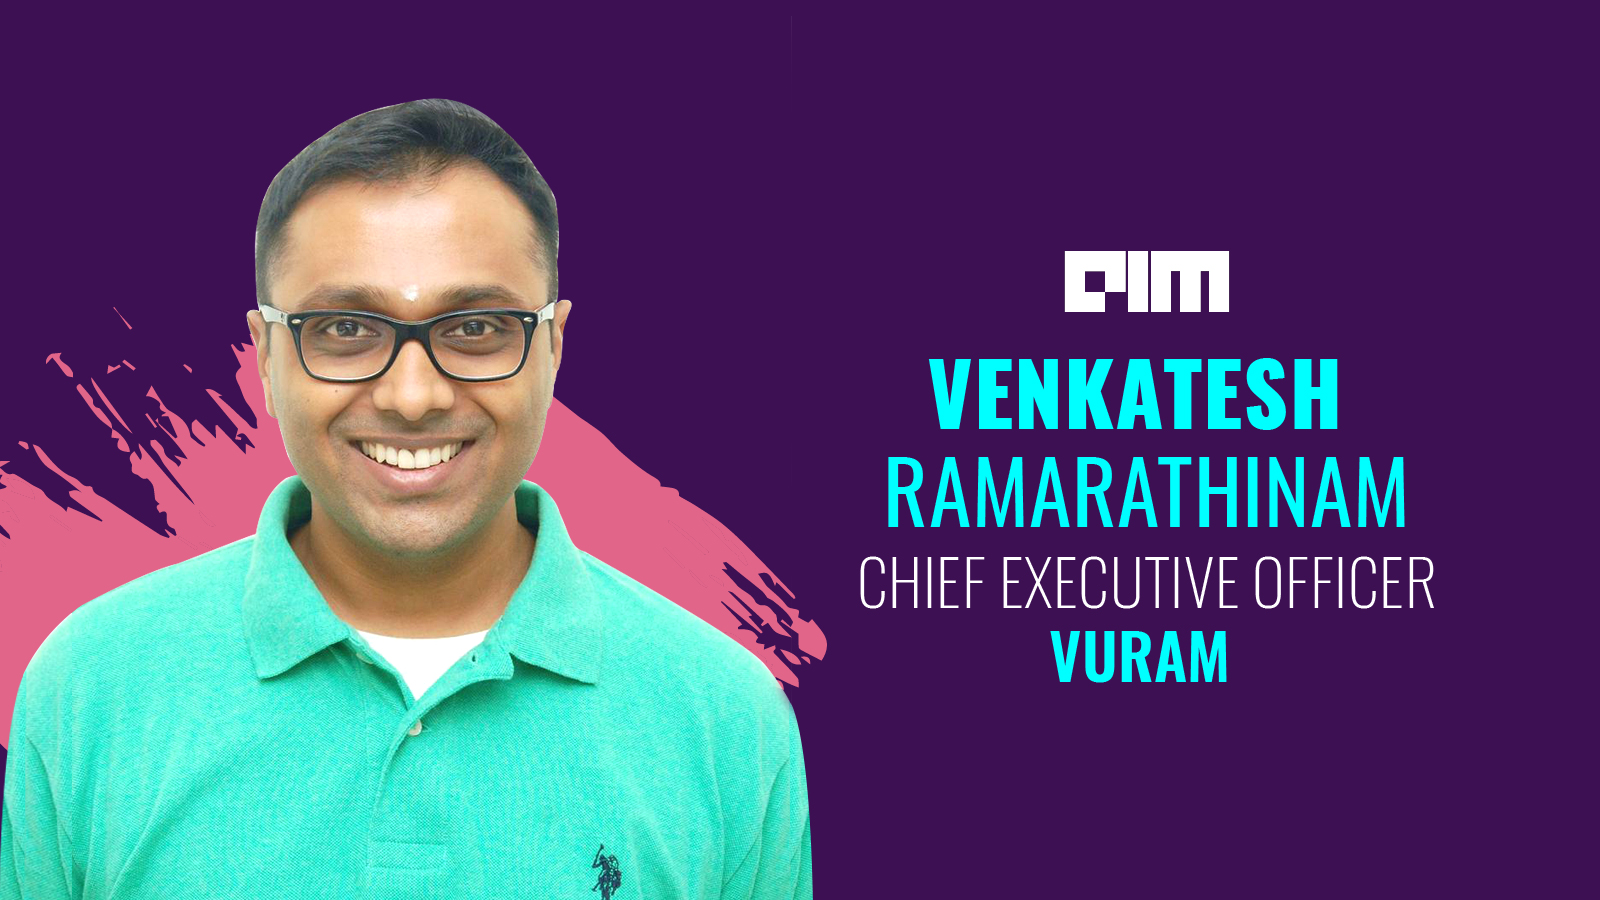 Low-Code Development Lowers The Barrier To Entry — The Need Of The Hour, Says Venkatesh Ramarathinam, CEO, Vuram